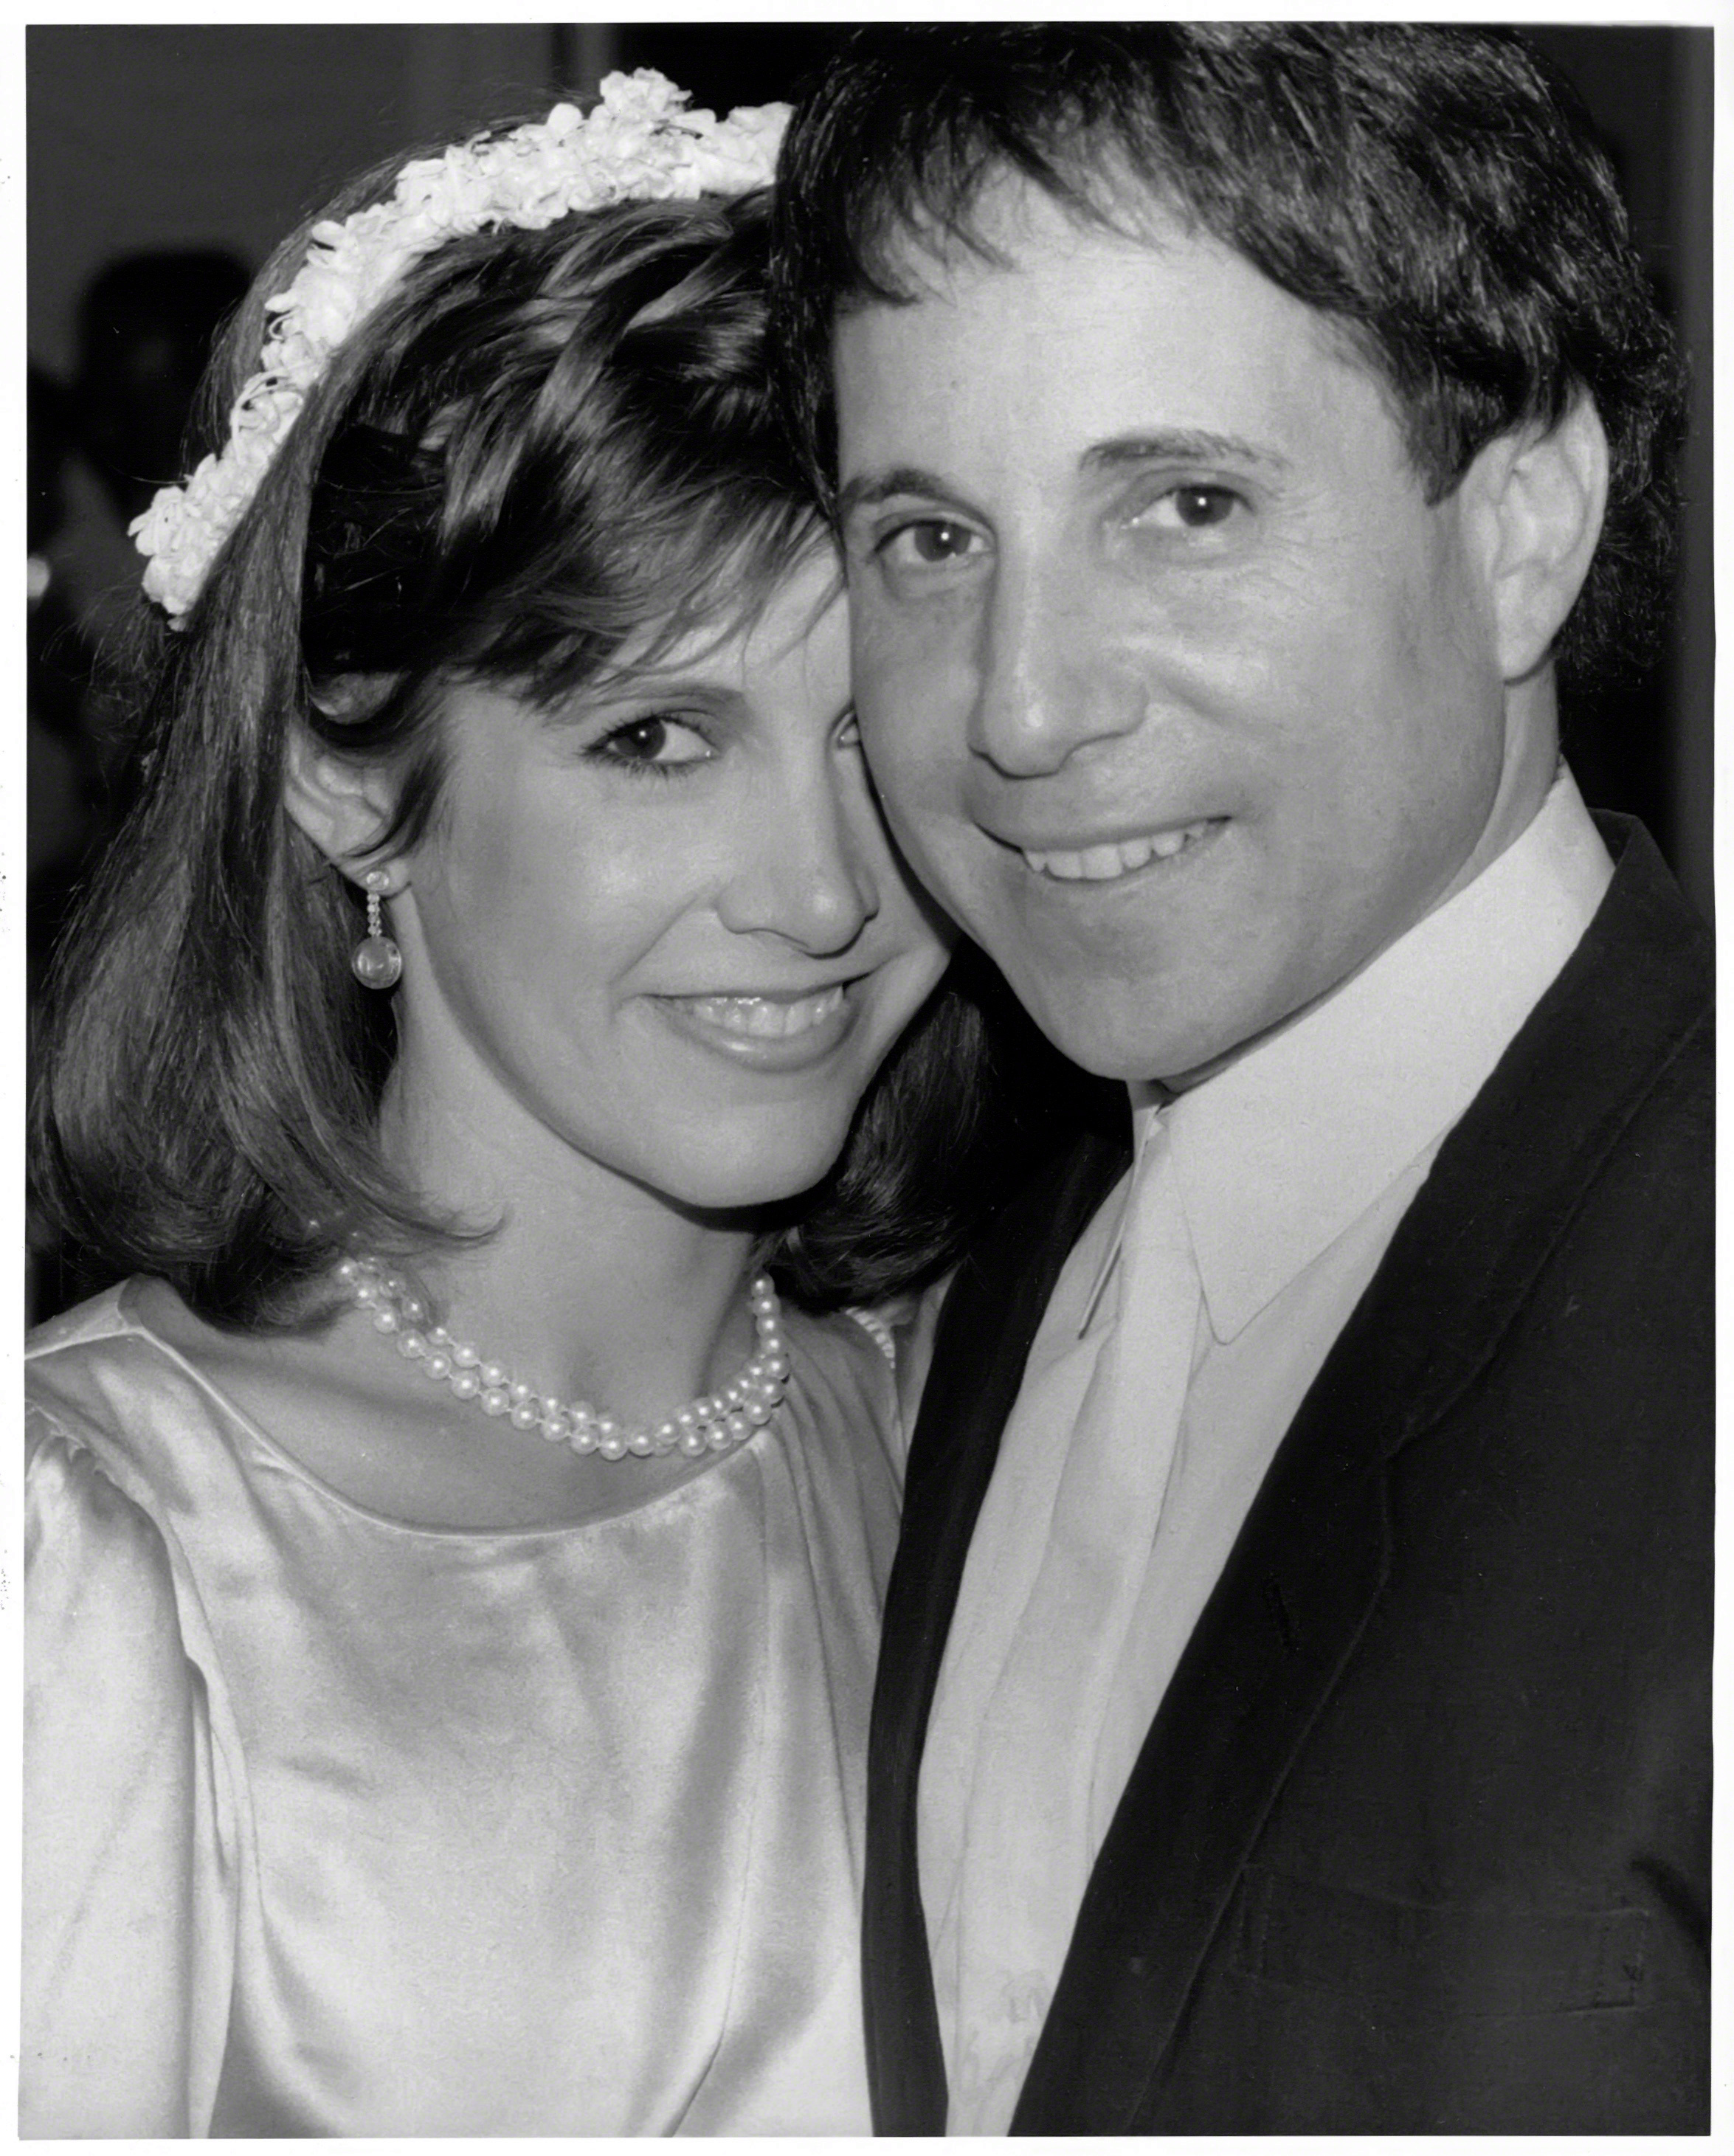 August Ames Twitter >> Paul Simon opens up about ex-wife Carrie Fisher's death, and we've got so many feels